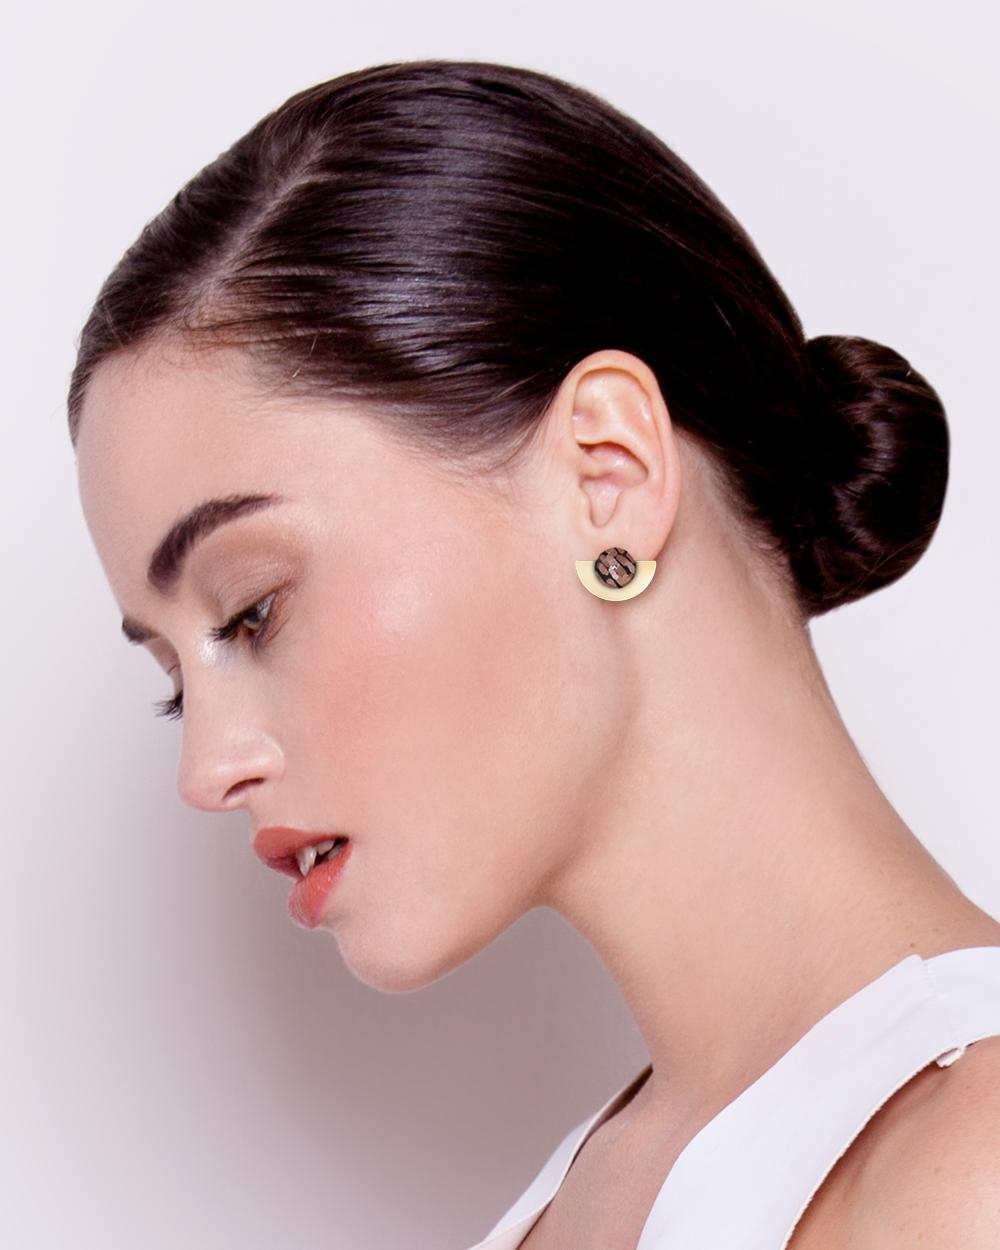 Storylines Miimi and Jiinda Layered Small Moon Stud Earrings